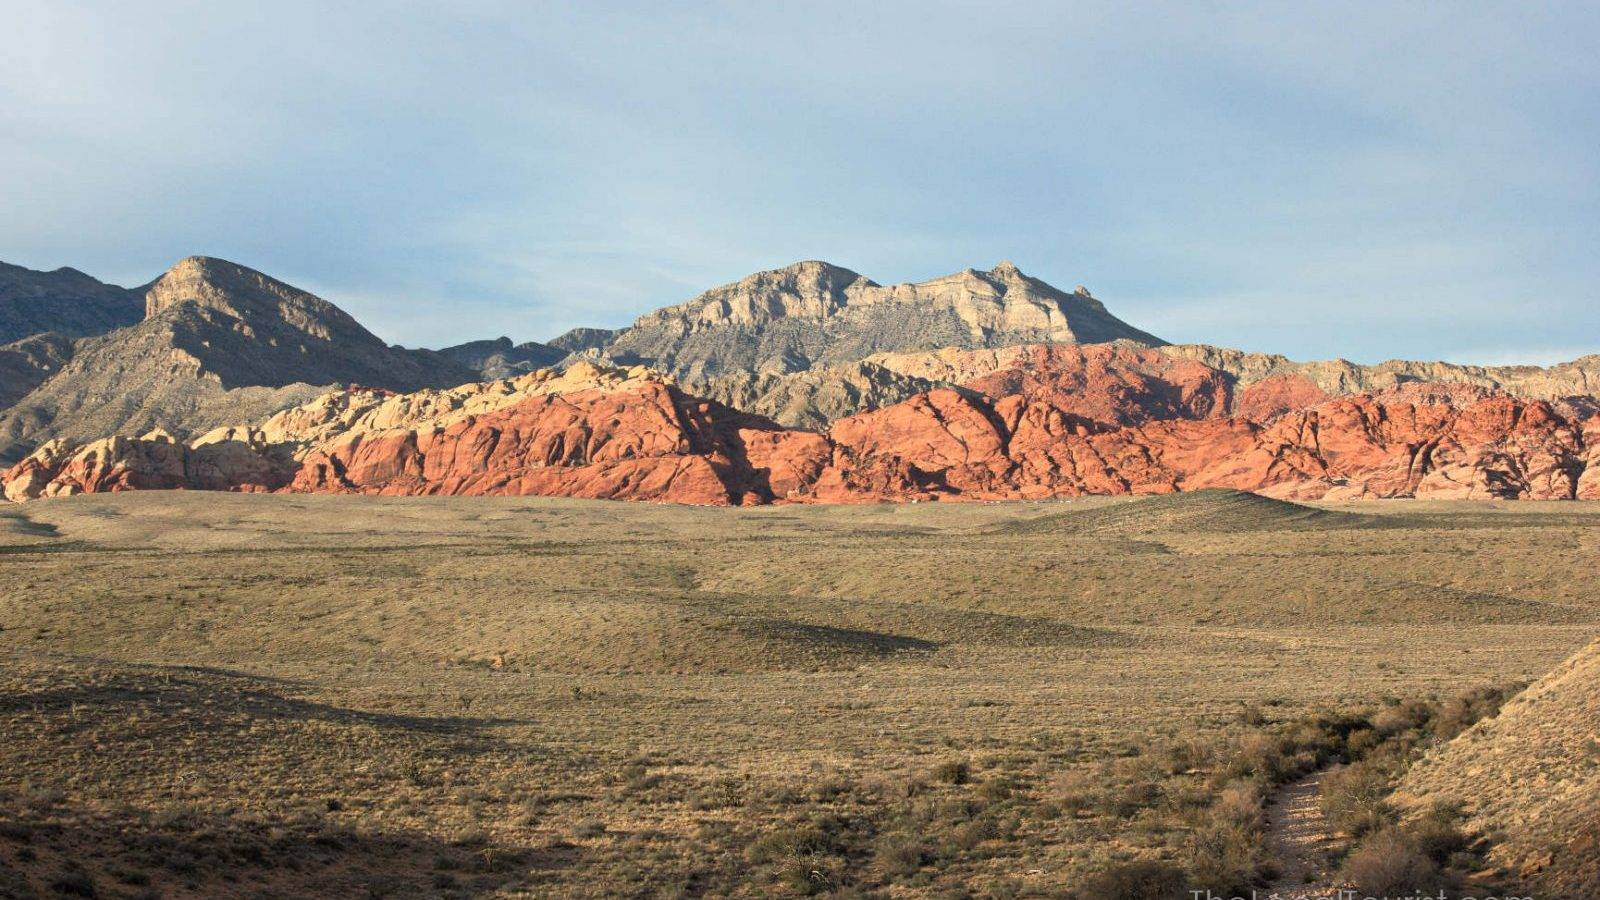 Red Rock Canyon outside of Las Vegas, Nevada